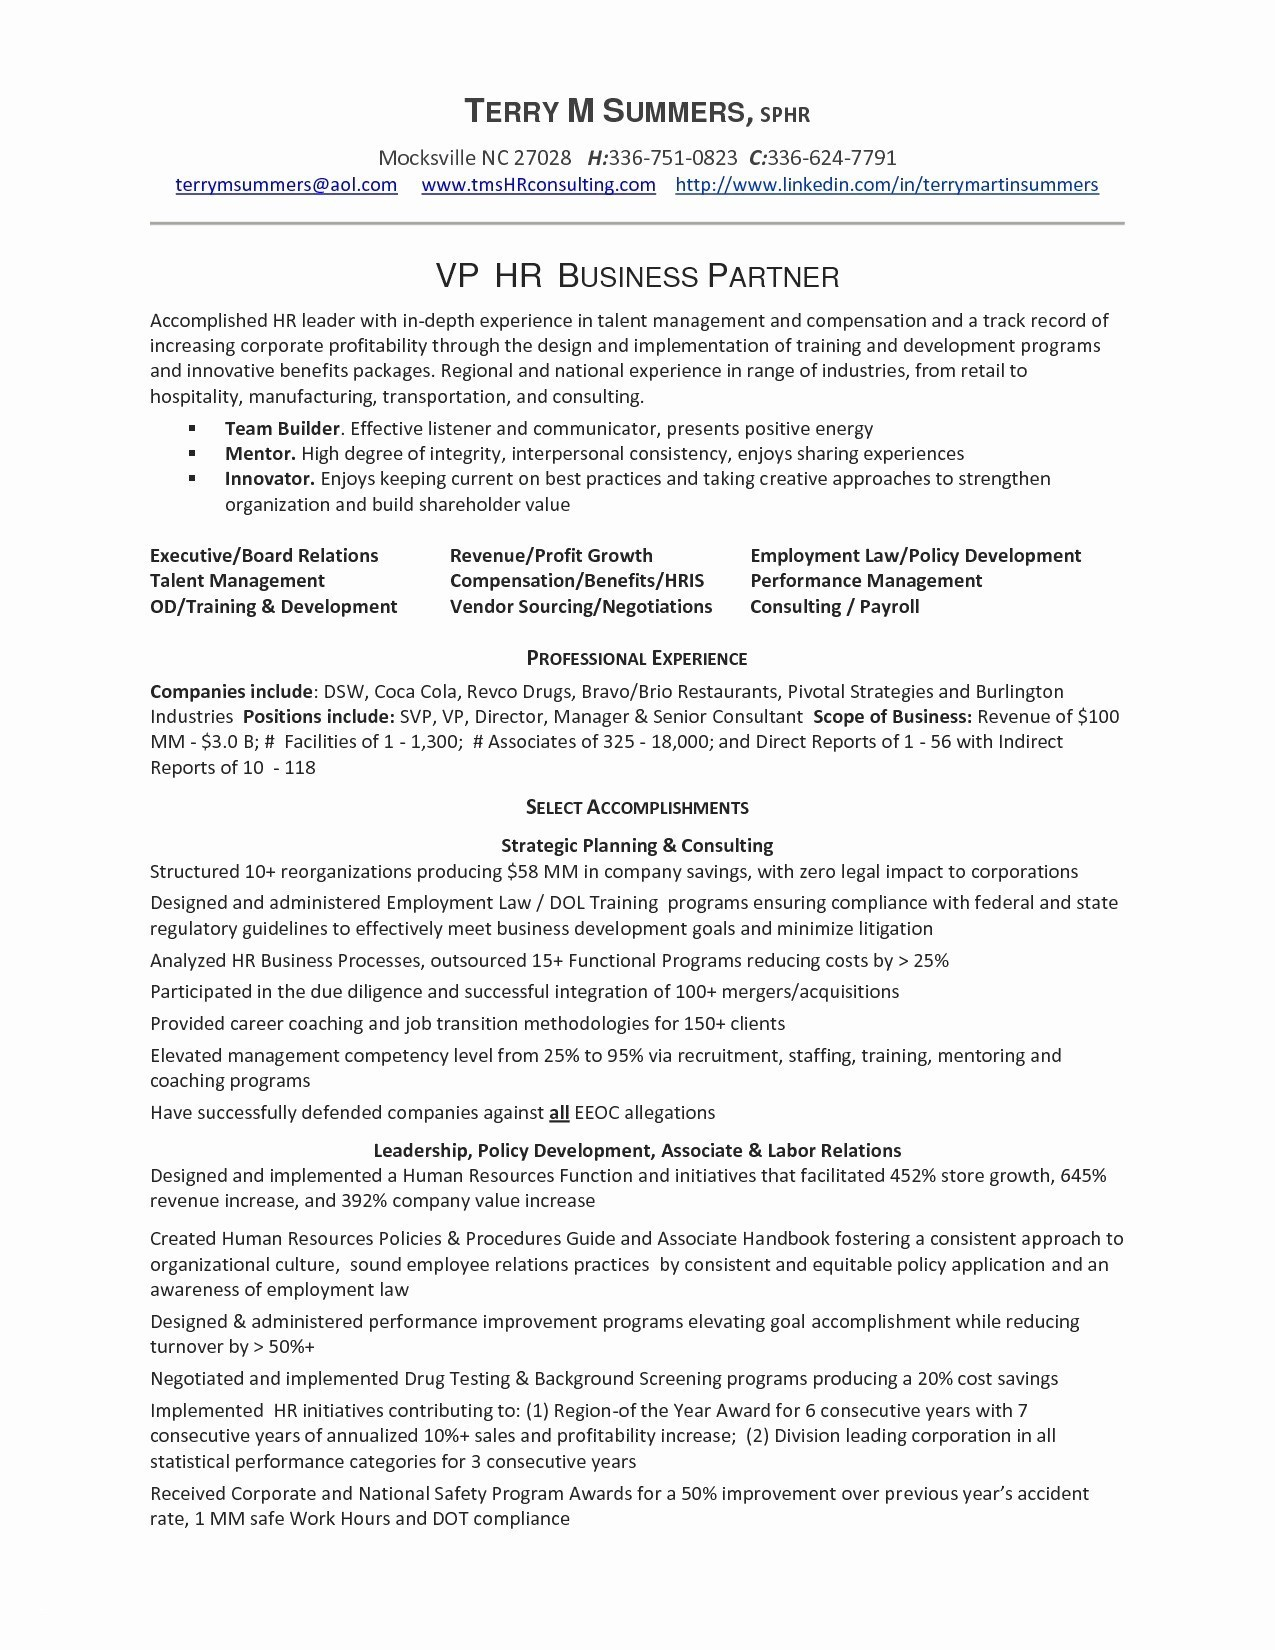 accounting clerk resume sample Collection-Accounting Clerk Resume Sample 1-h